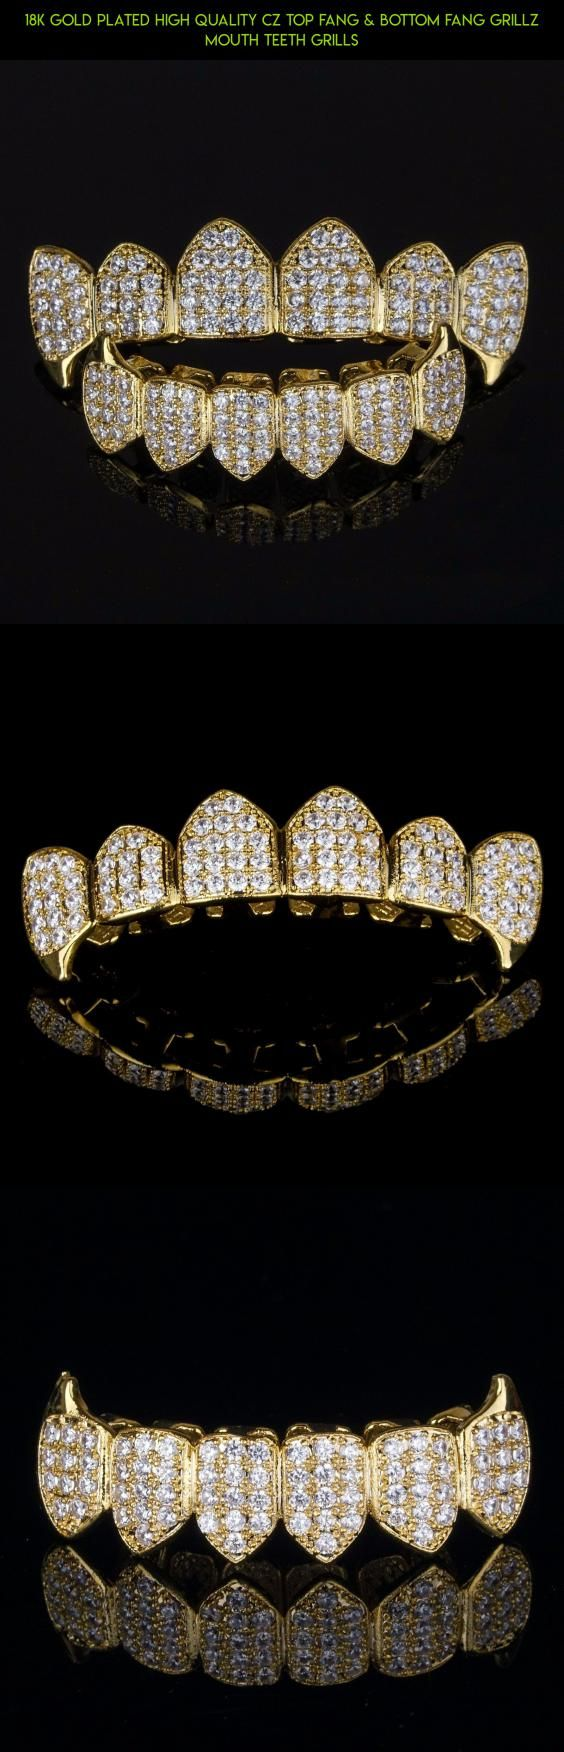 18K Gold Plated High Quality CZ Top Fang & Bottom Fang GRILLZ Mouth Teeth Grills #products #technology #plans #bottom #fpv #racing #gadgets #kit #fangs #tech #teeth #parts #camera #shopping #drone #grills